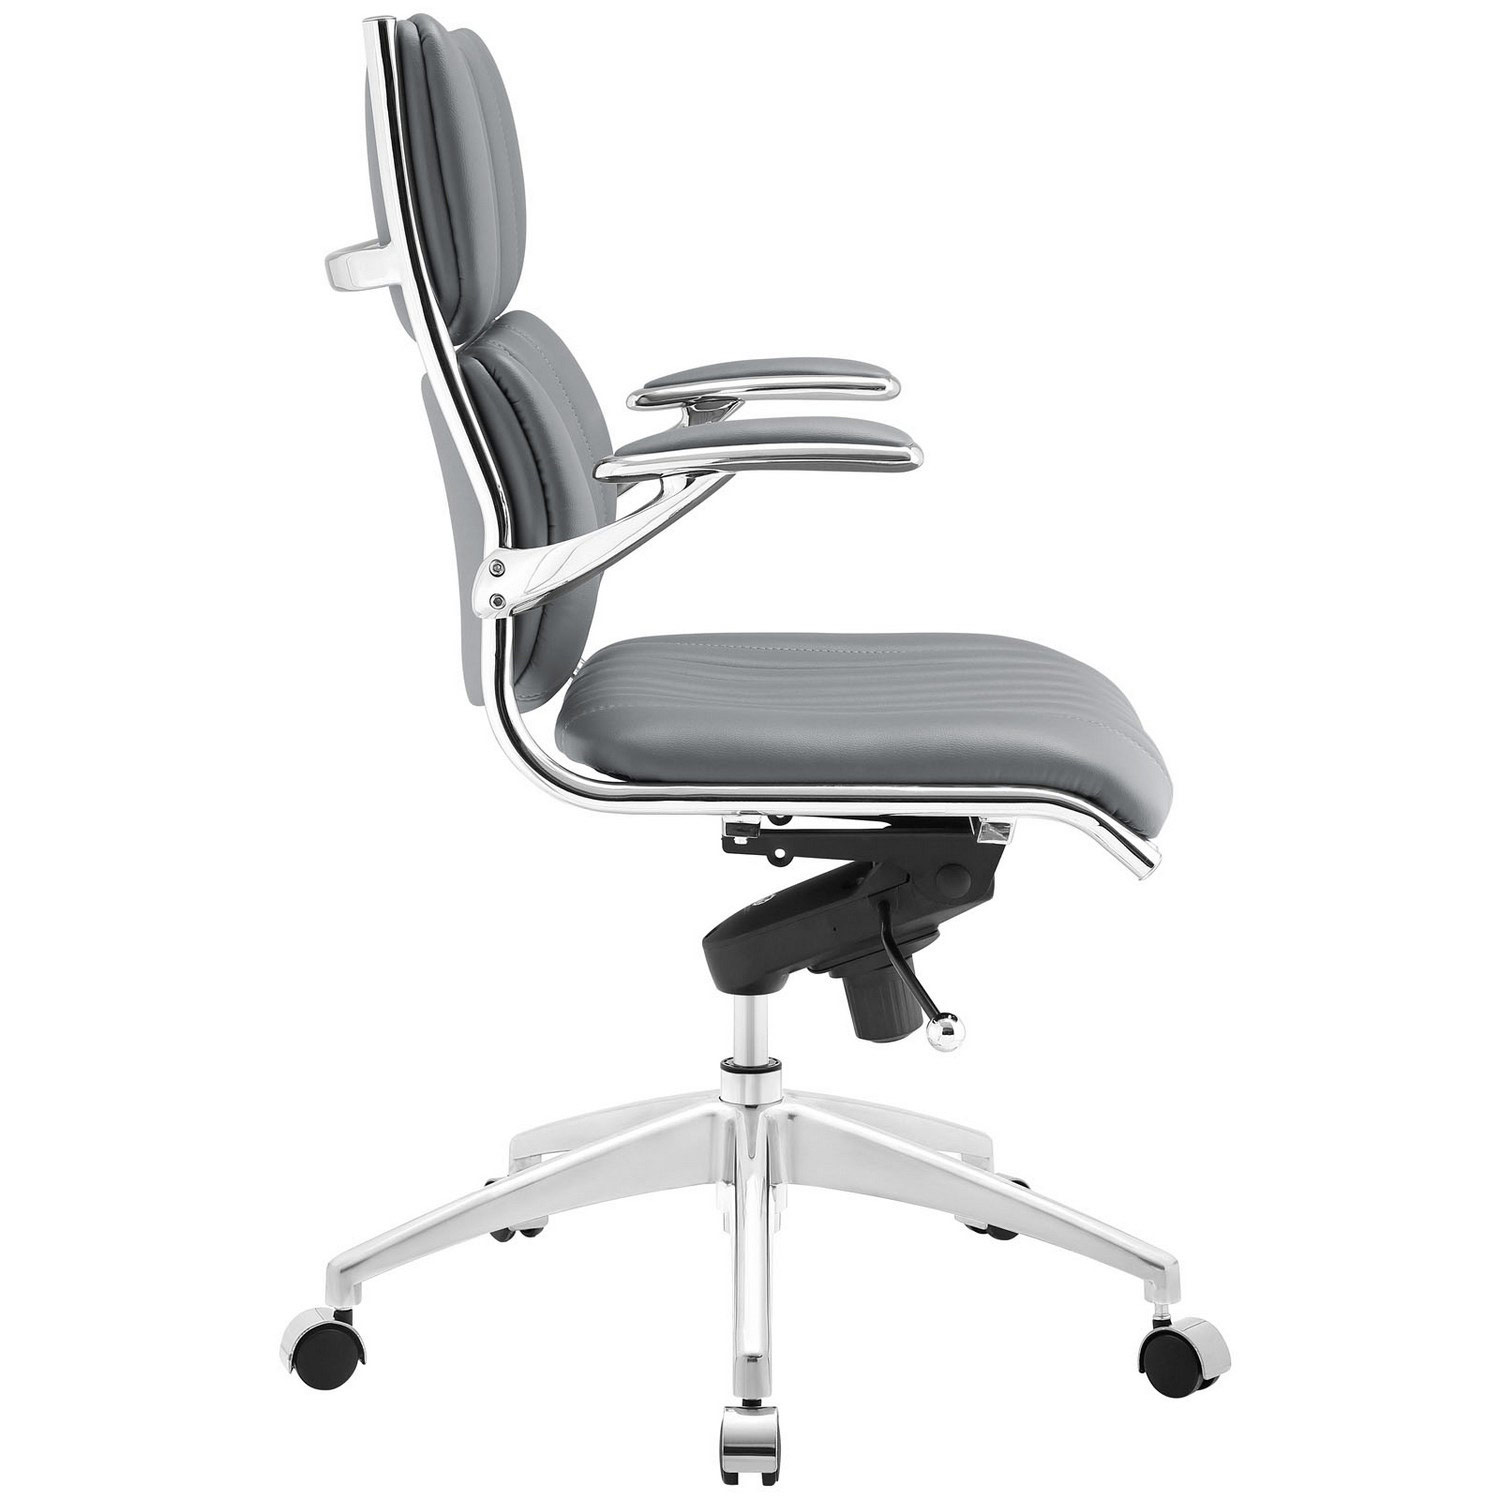 Modway Escape Mid Back Office Chair - Gray